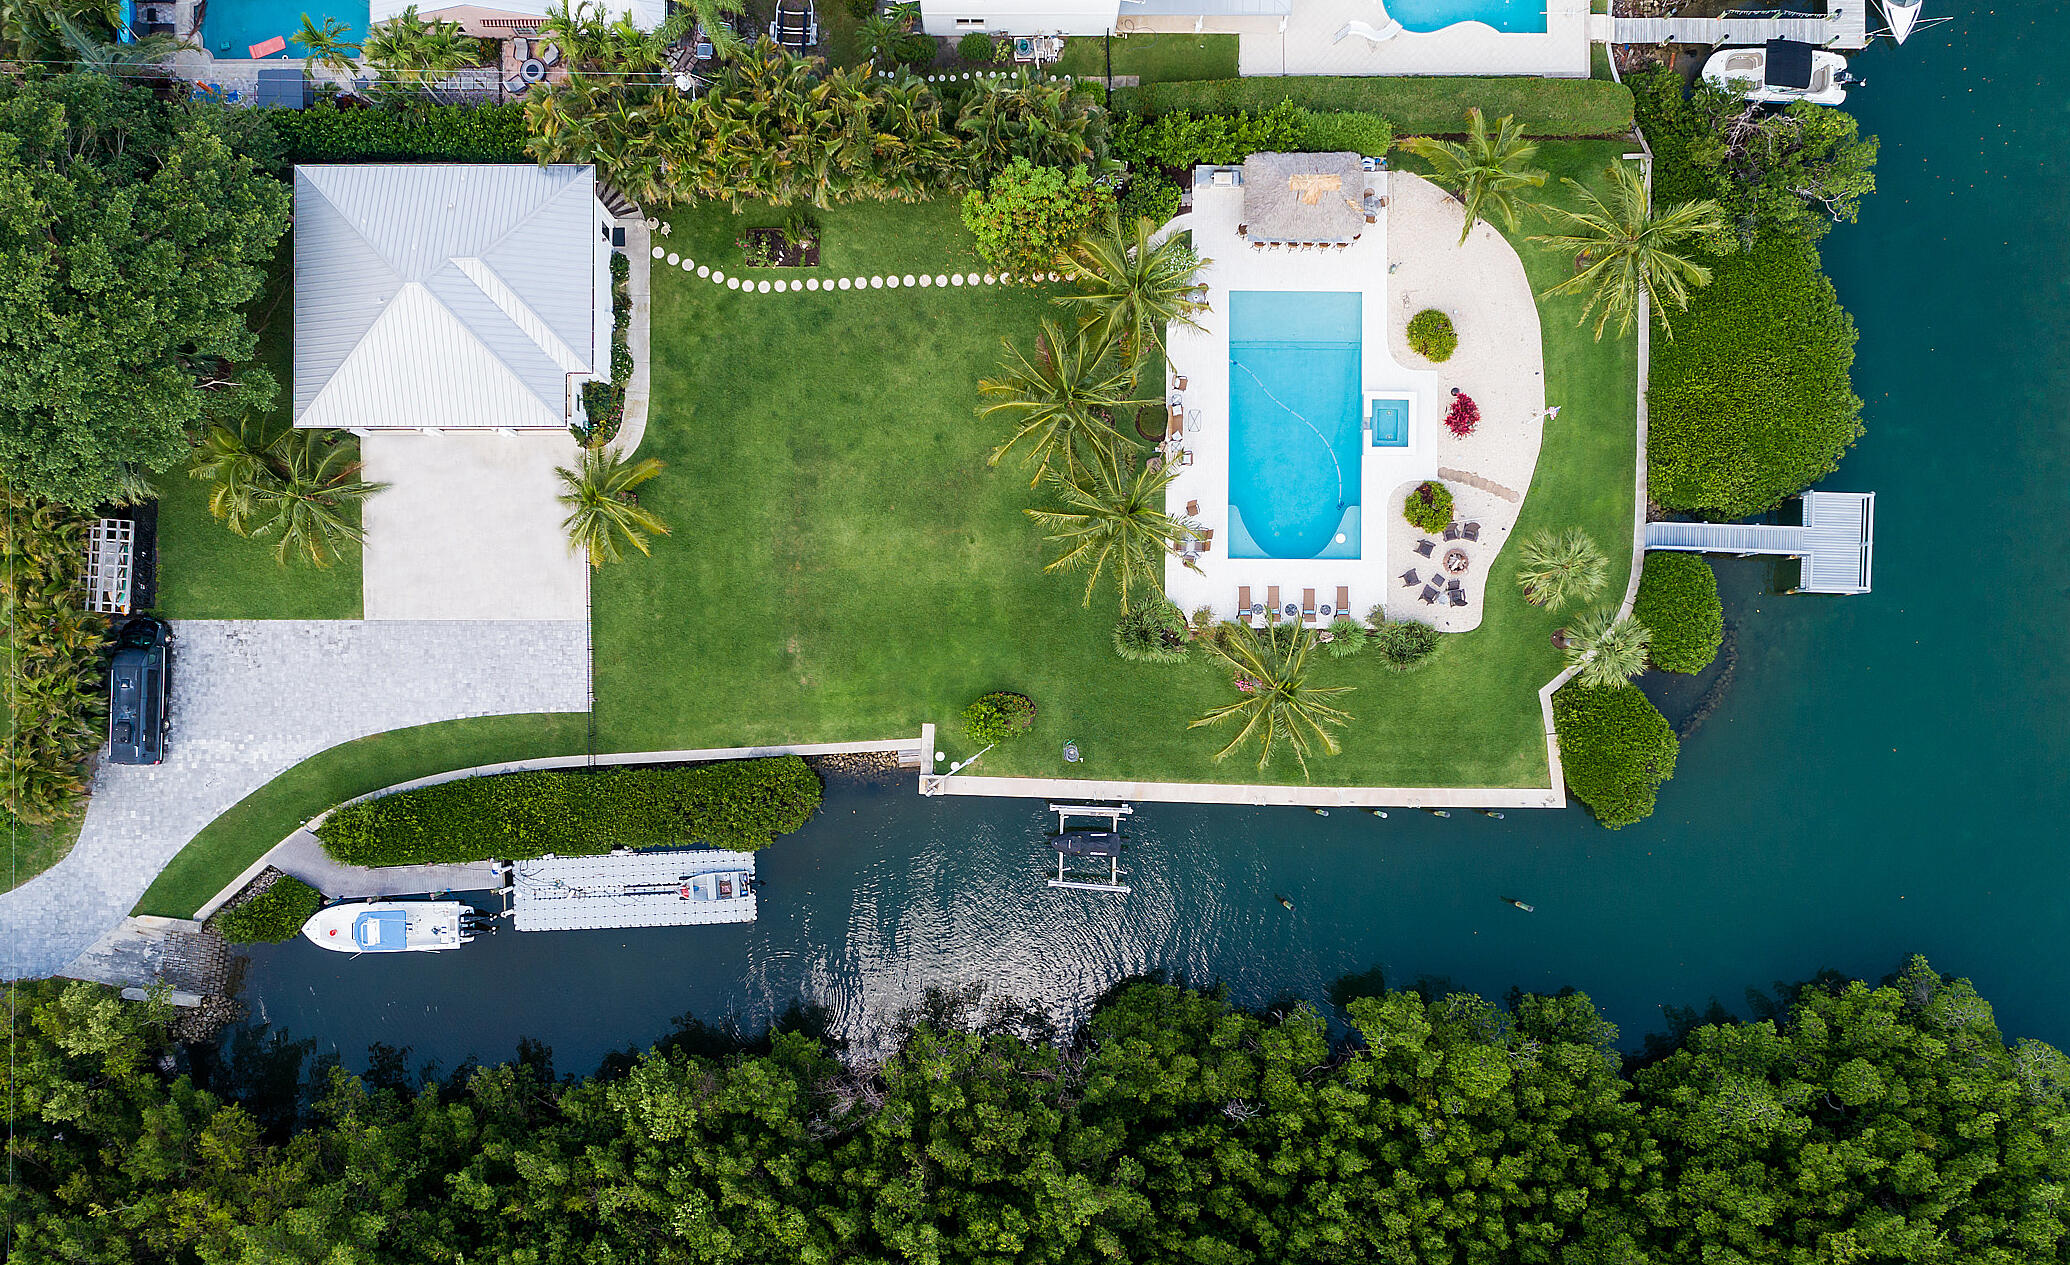 Build your own dream home! This rare waterfront lot, just minutes from the Jupiter inlet, offers expansive blue-water views. This lot, which has 125' of direct river frontage and 225' of canal access, is just under 1 acre. The property includes a 3/2 guest house, private driveway, boat ramp, boat lift, new dock, and newly renovated pool, deck and spa. The high end outdoor kitchen, protected by a tiki hut, includes built-in gas cooktop, grill, smoker and rotisserie, two refrigerators, one beverage refrigerator, double-drawer freezer, ice maker, kegerator, 60-inch flat screen tv and enclosed dry storage. Other features include a fire pit, Sonos surround-sound system for the pool area, gas tiki torches, outdoor shower and Luma outdoor security system. Mature landscaping and mangroves.